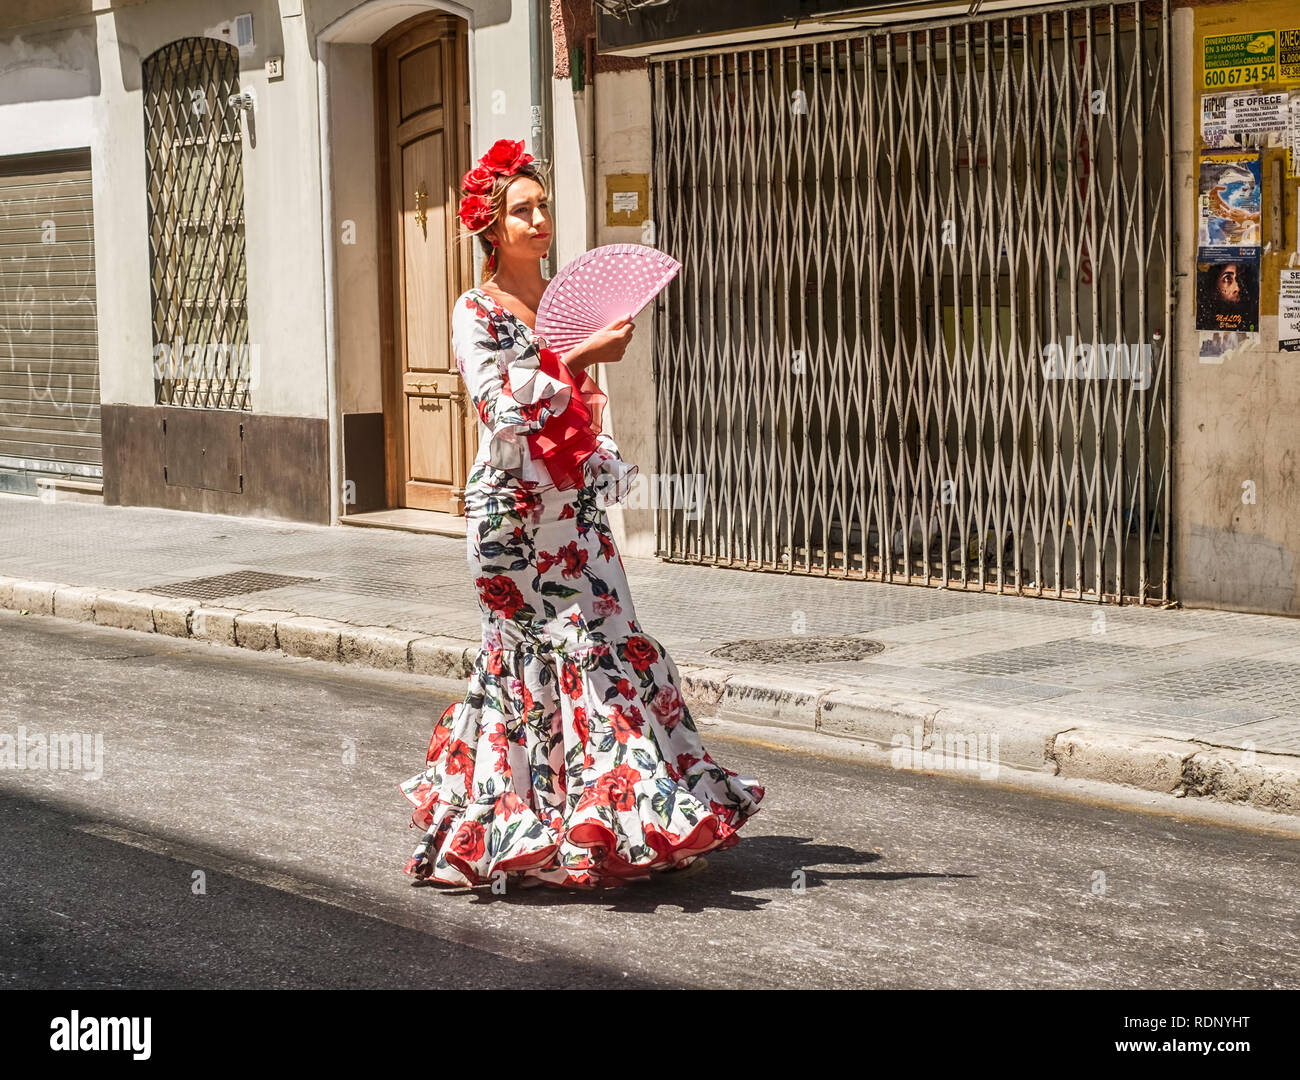 Malaga, Spain - August 11, 2018. Feria de Malaga is an annual event that takes place in mid-August and is one of the largest fiestas in Spain - Stock Image